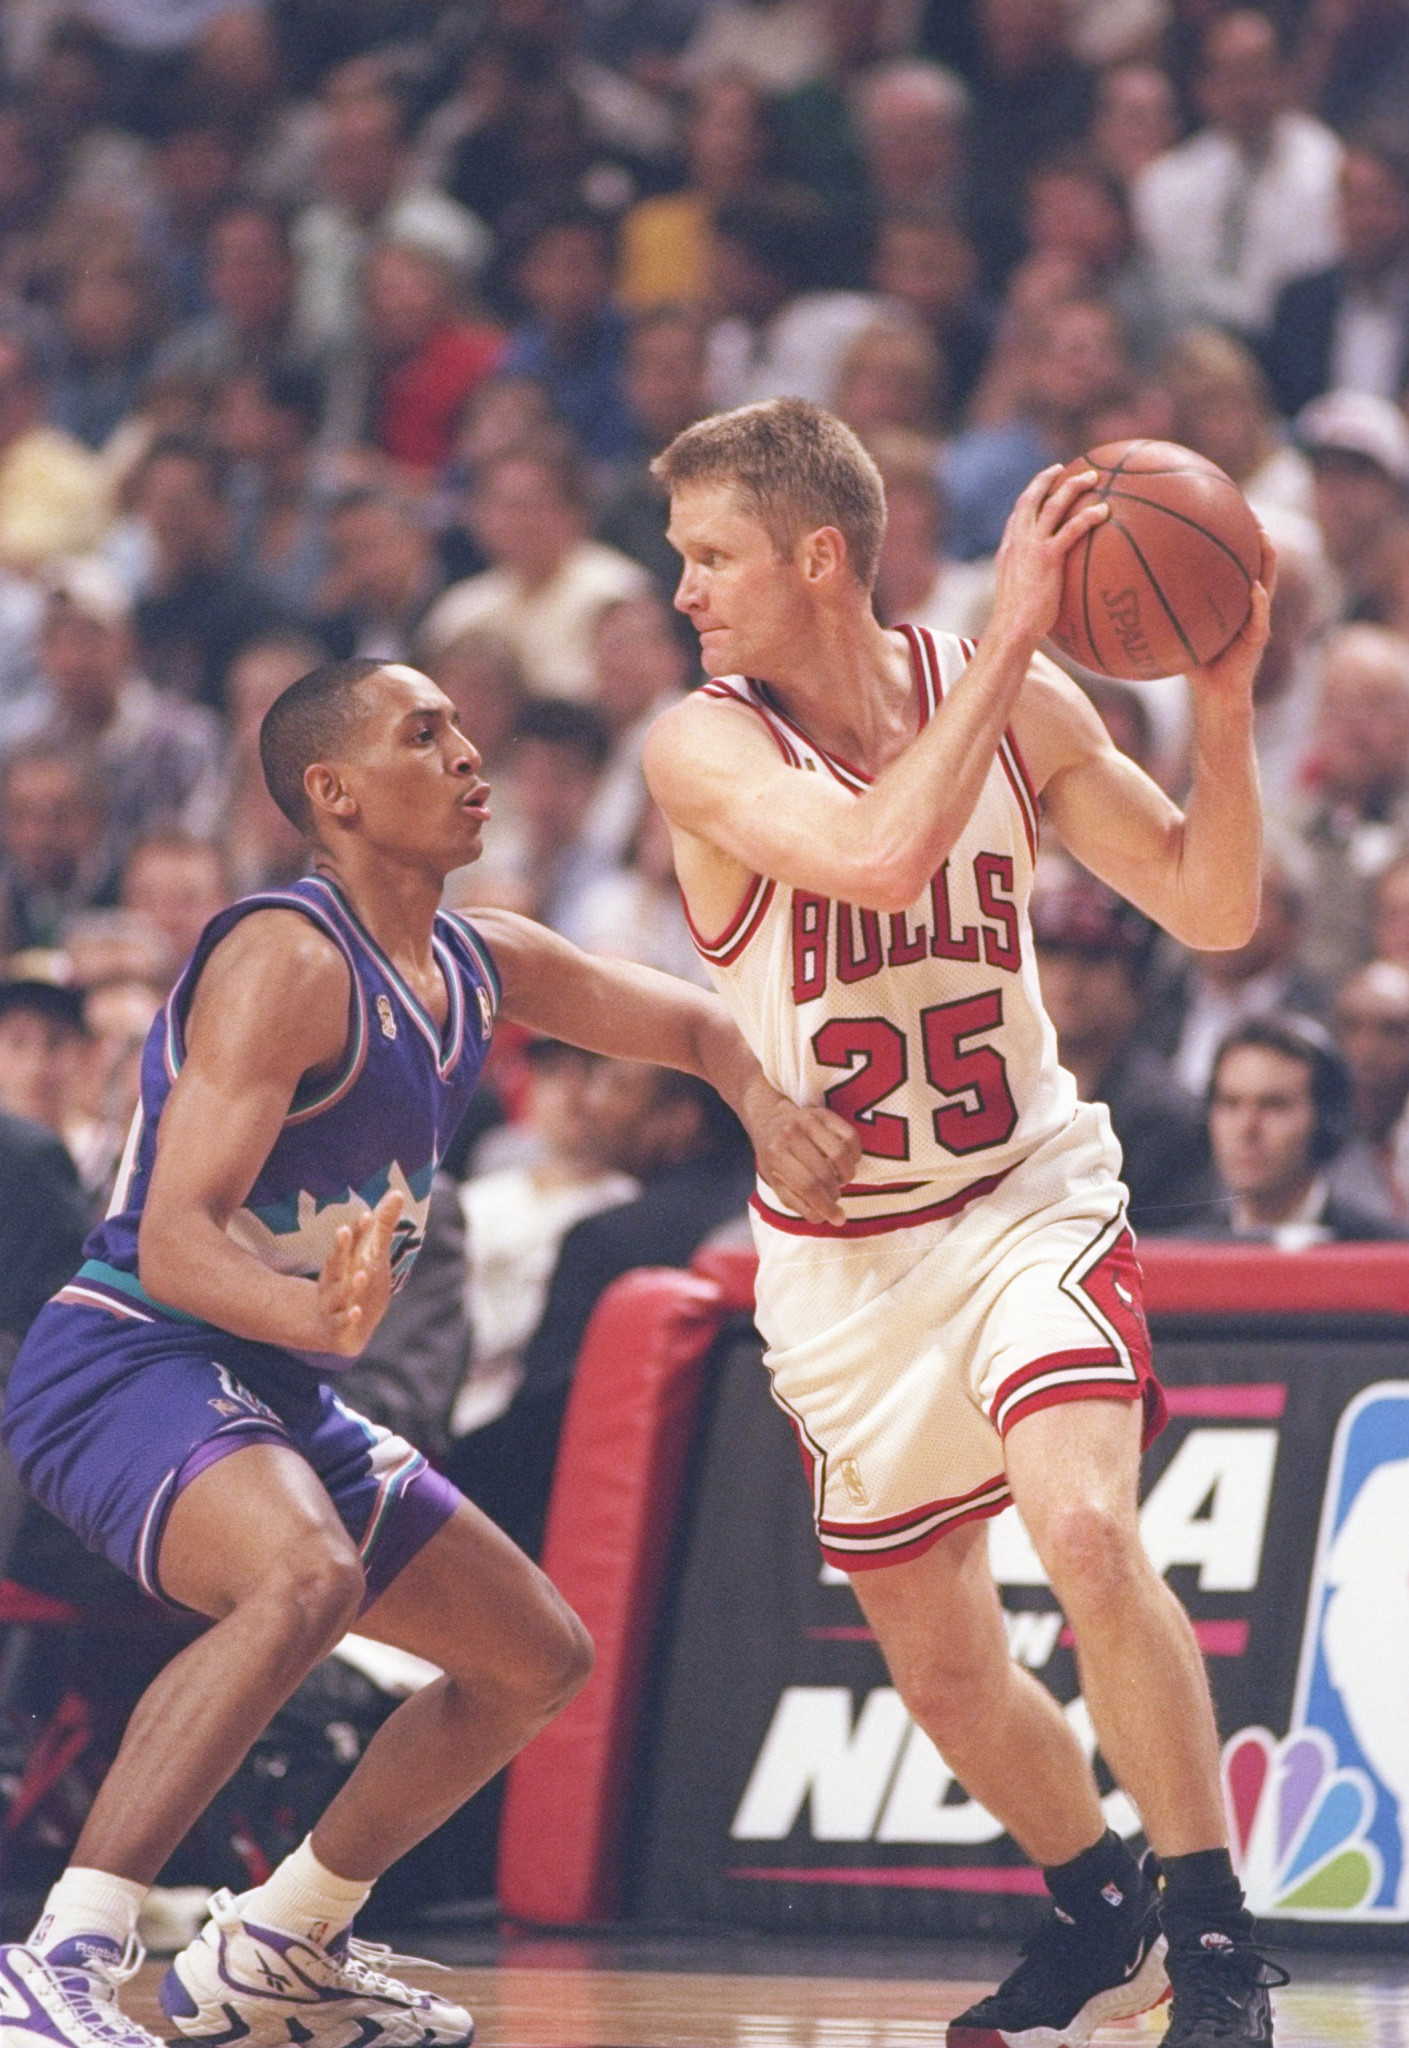 Chicago Bulls star Kerr's game-winning shorts up for auction